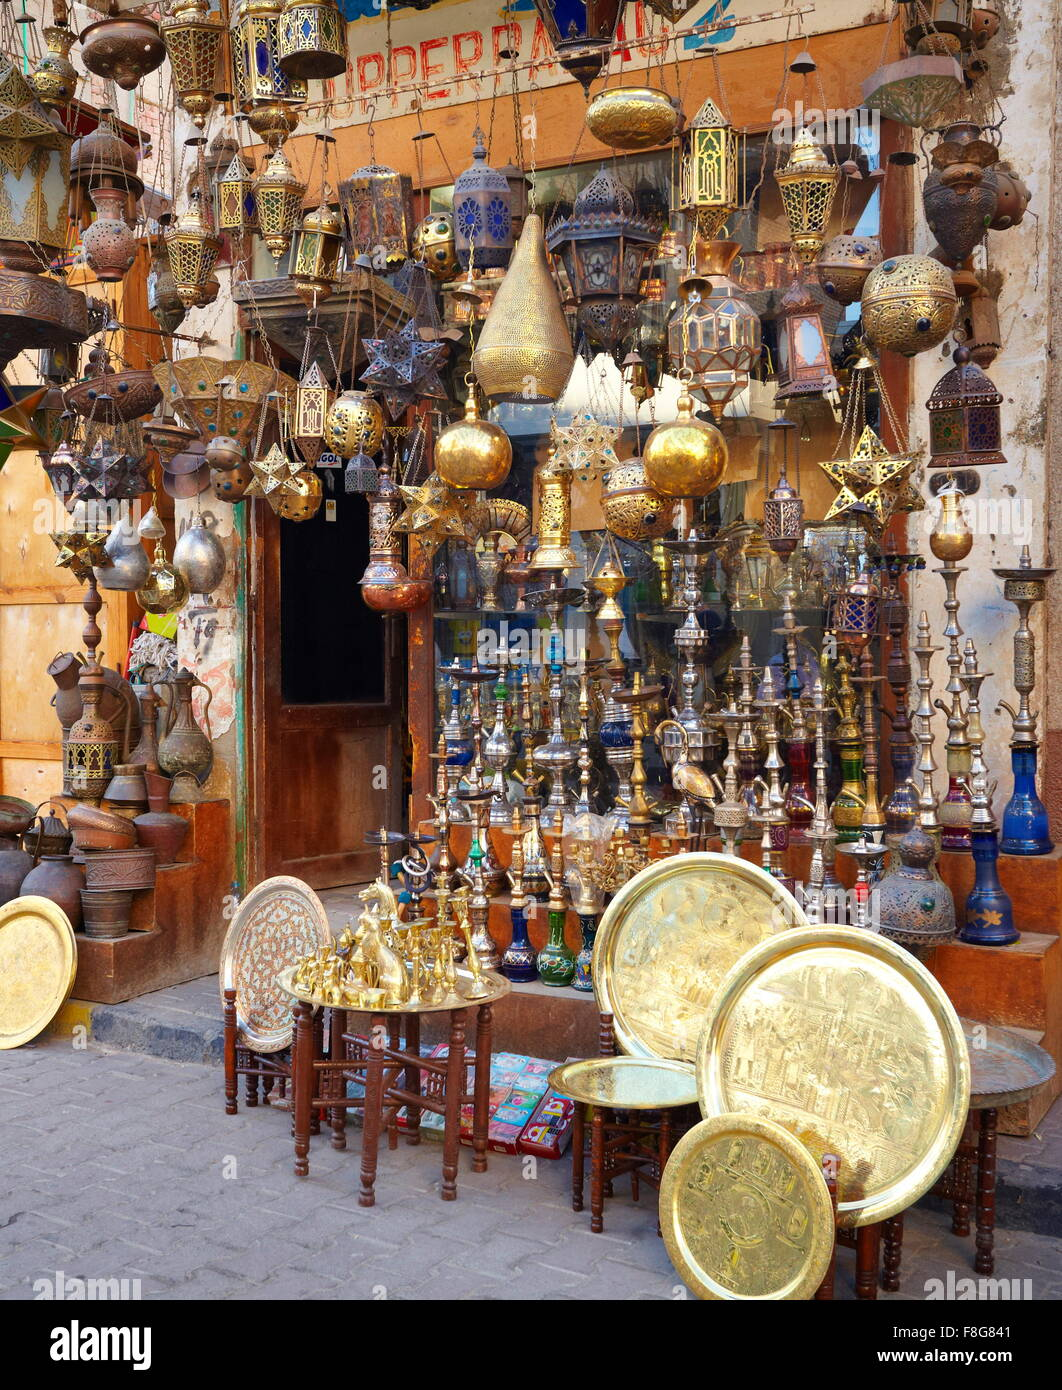 Egypt - Hurghada, bazaar in the old part of town - Stock Image